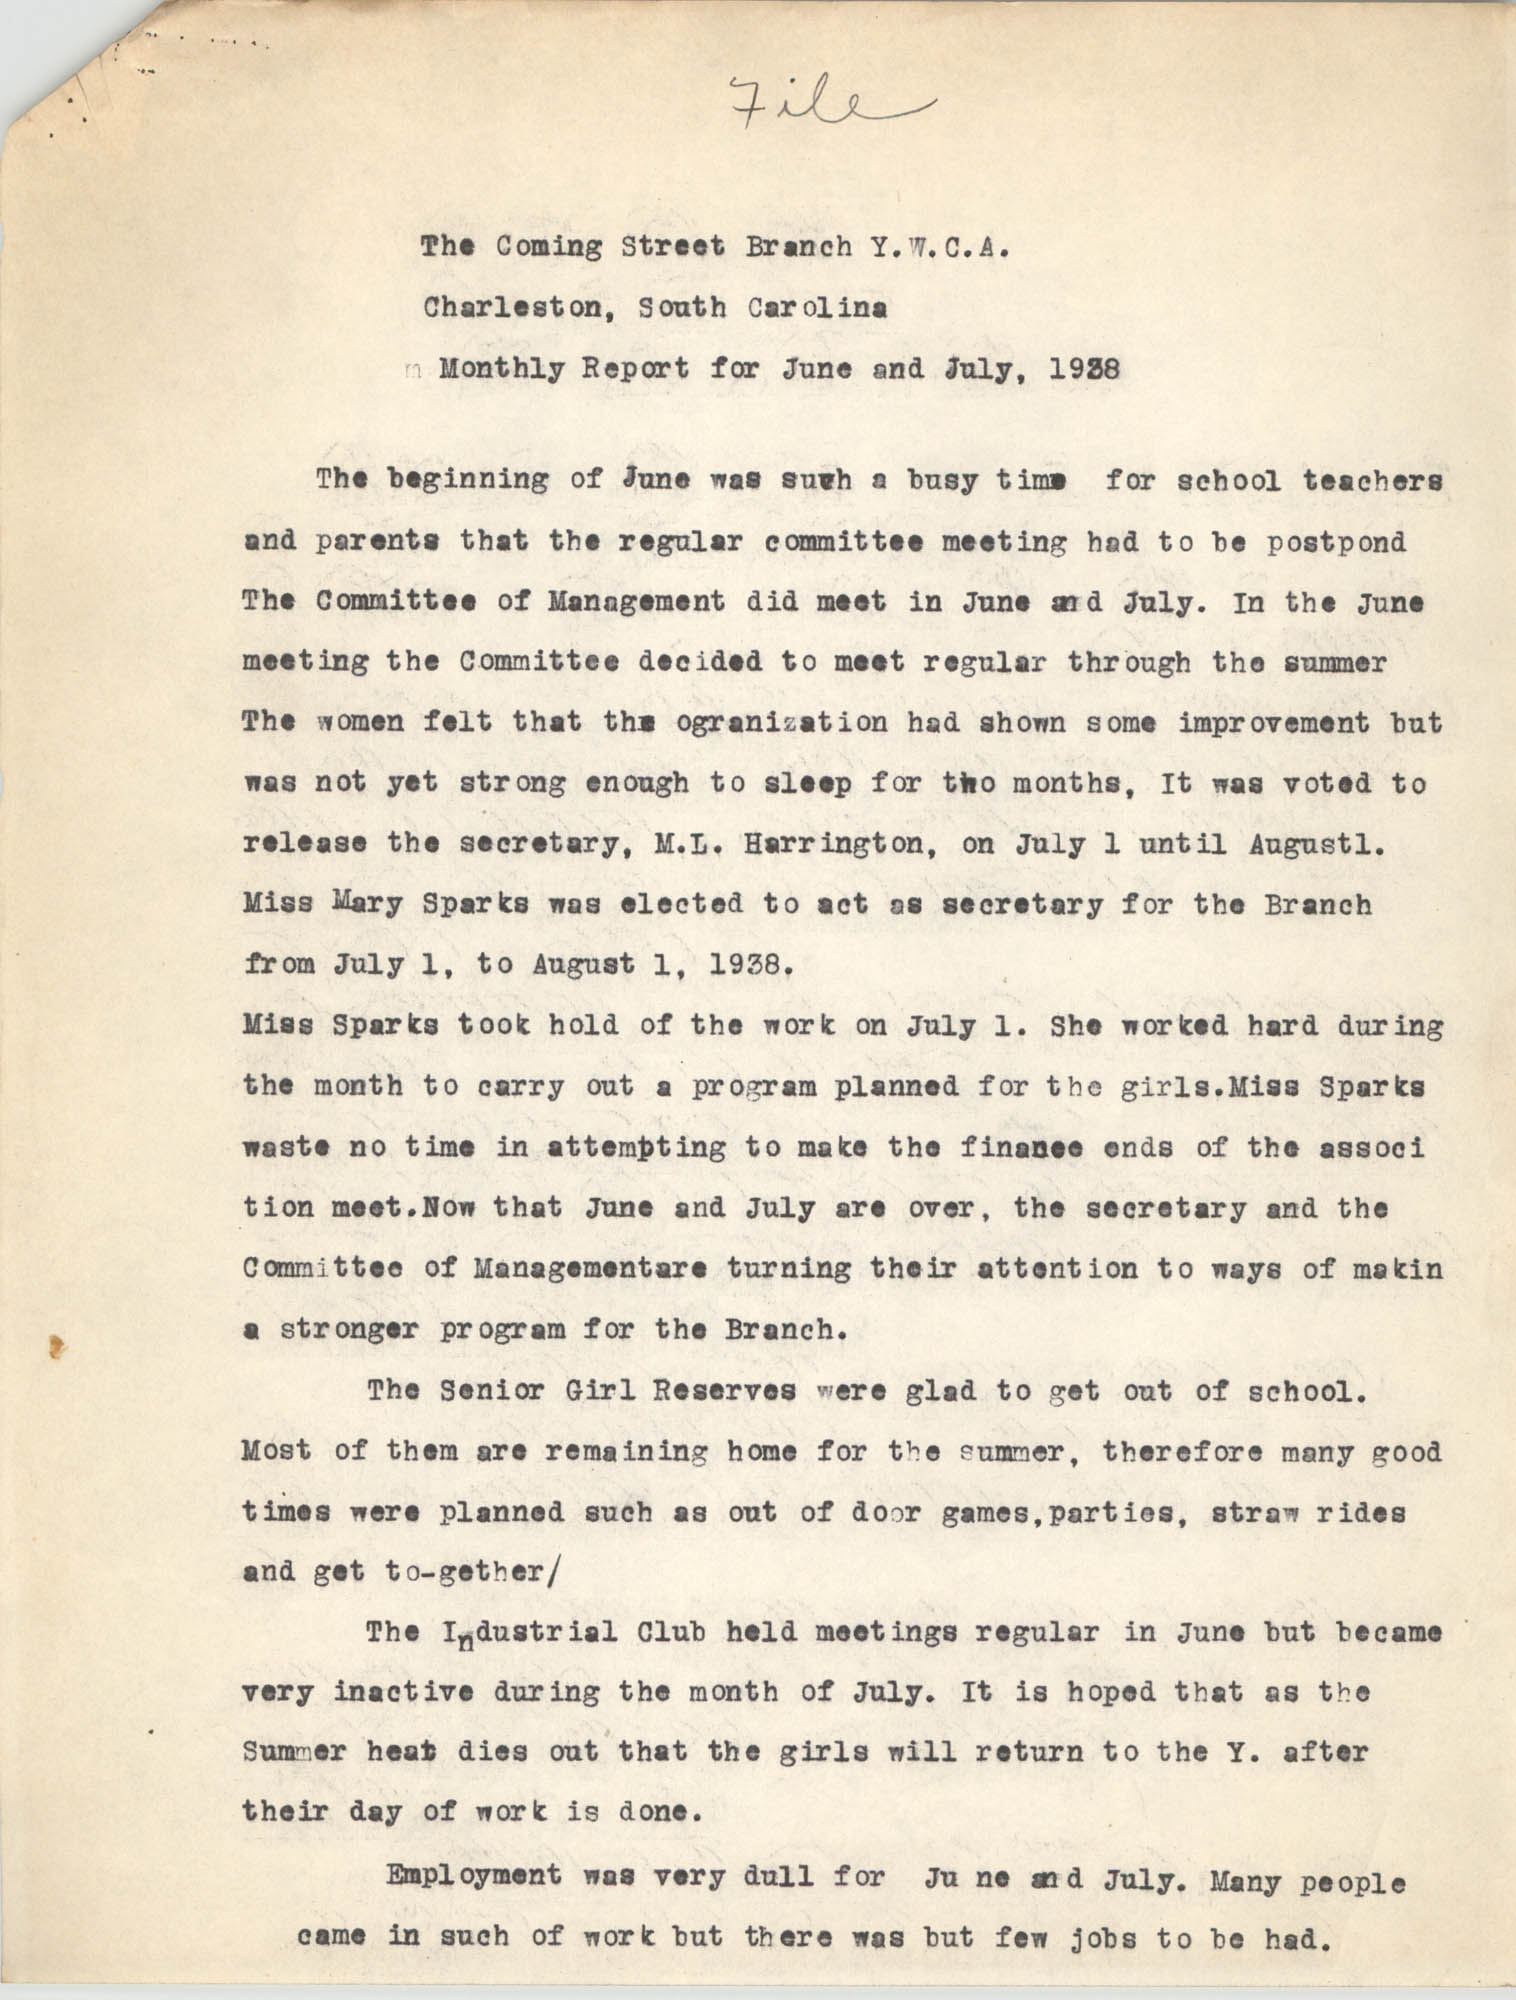 Monthly Report for the Coming Street Y.W.C.A., June and July 1938